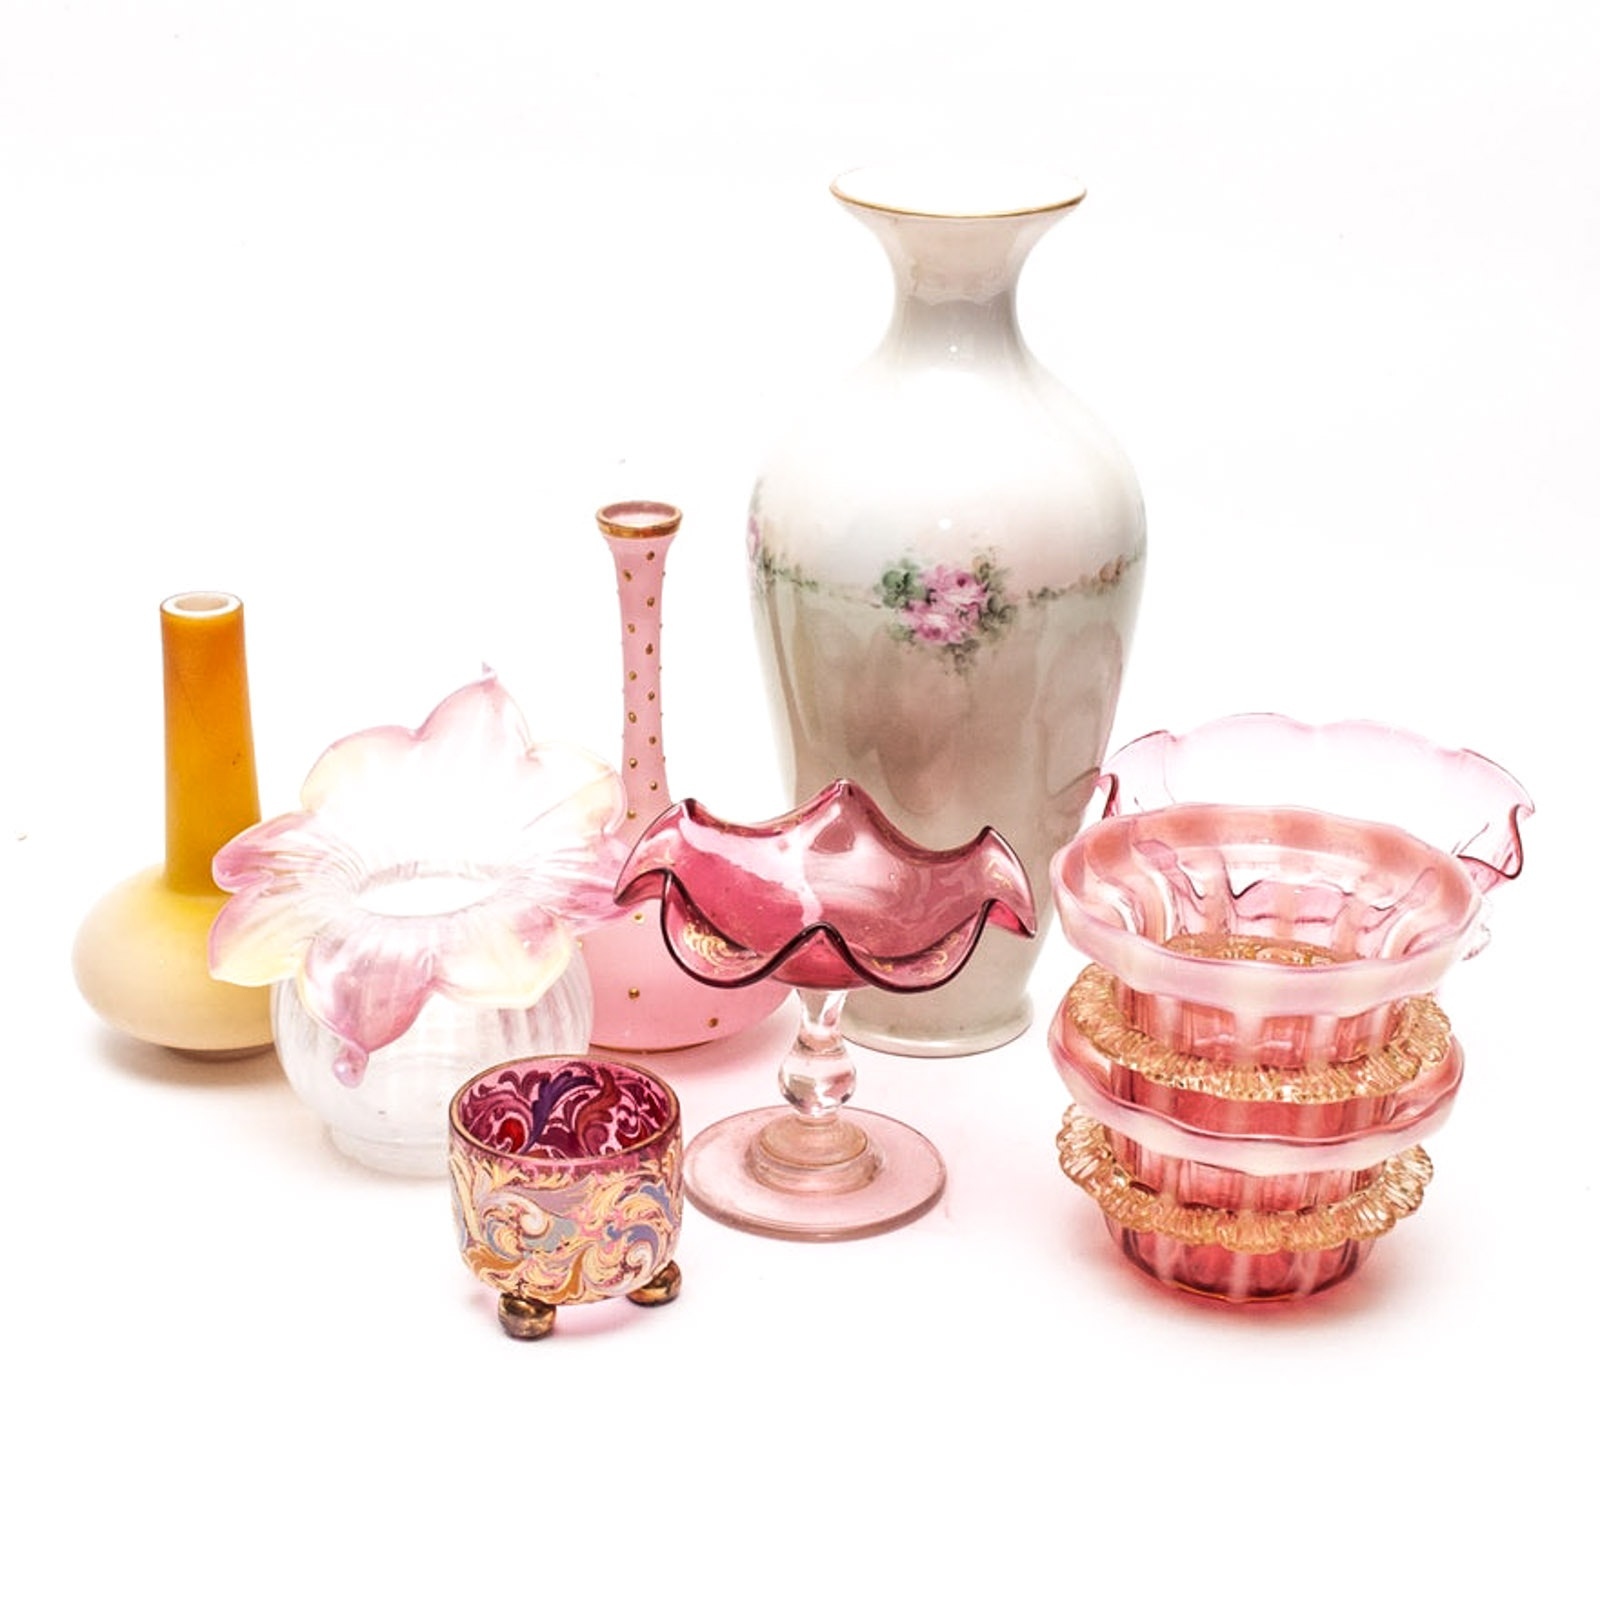 Porcelain and Glass Vases with Venetian Glass Finger Bowls